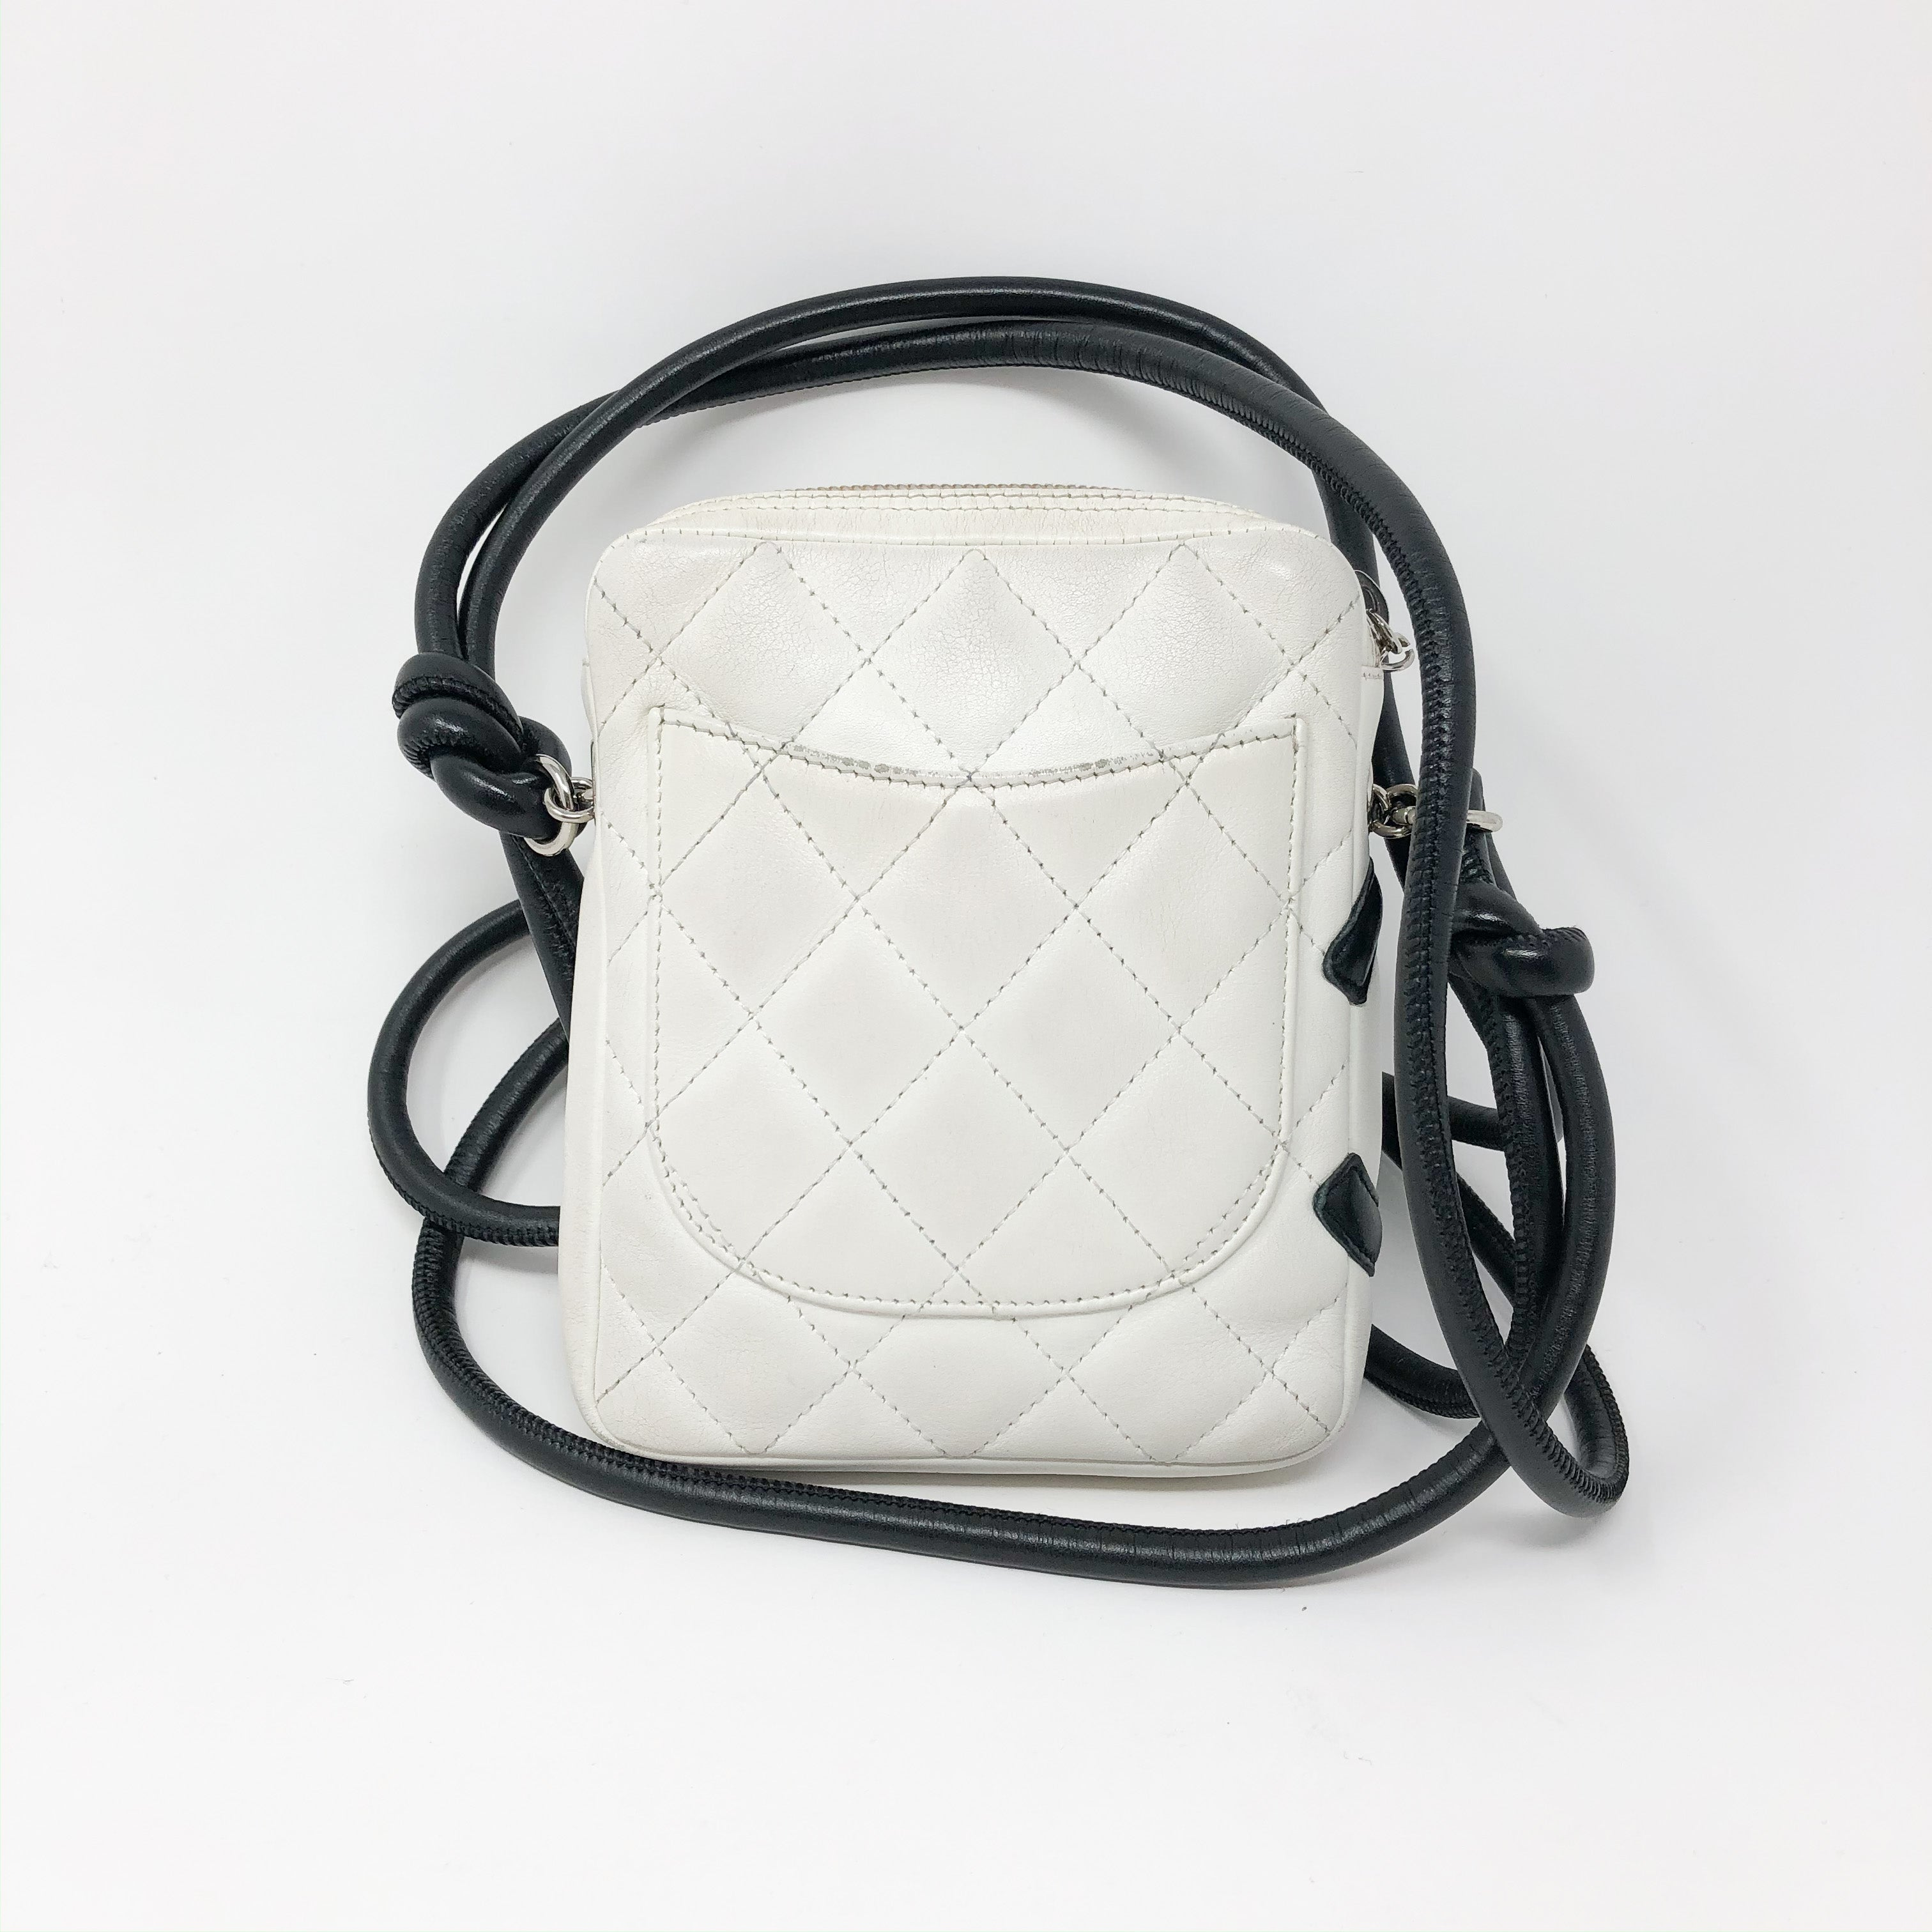 Bolsa Chanel Ligne Cambon Messenger Bag Chica